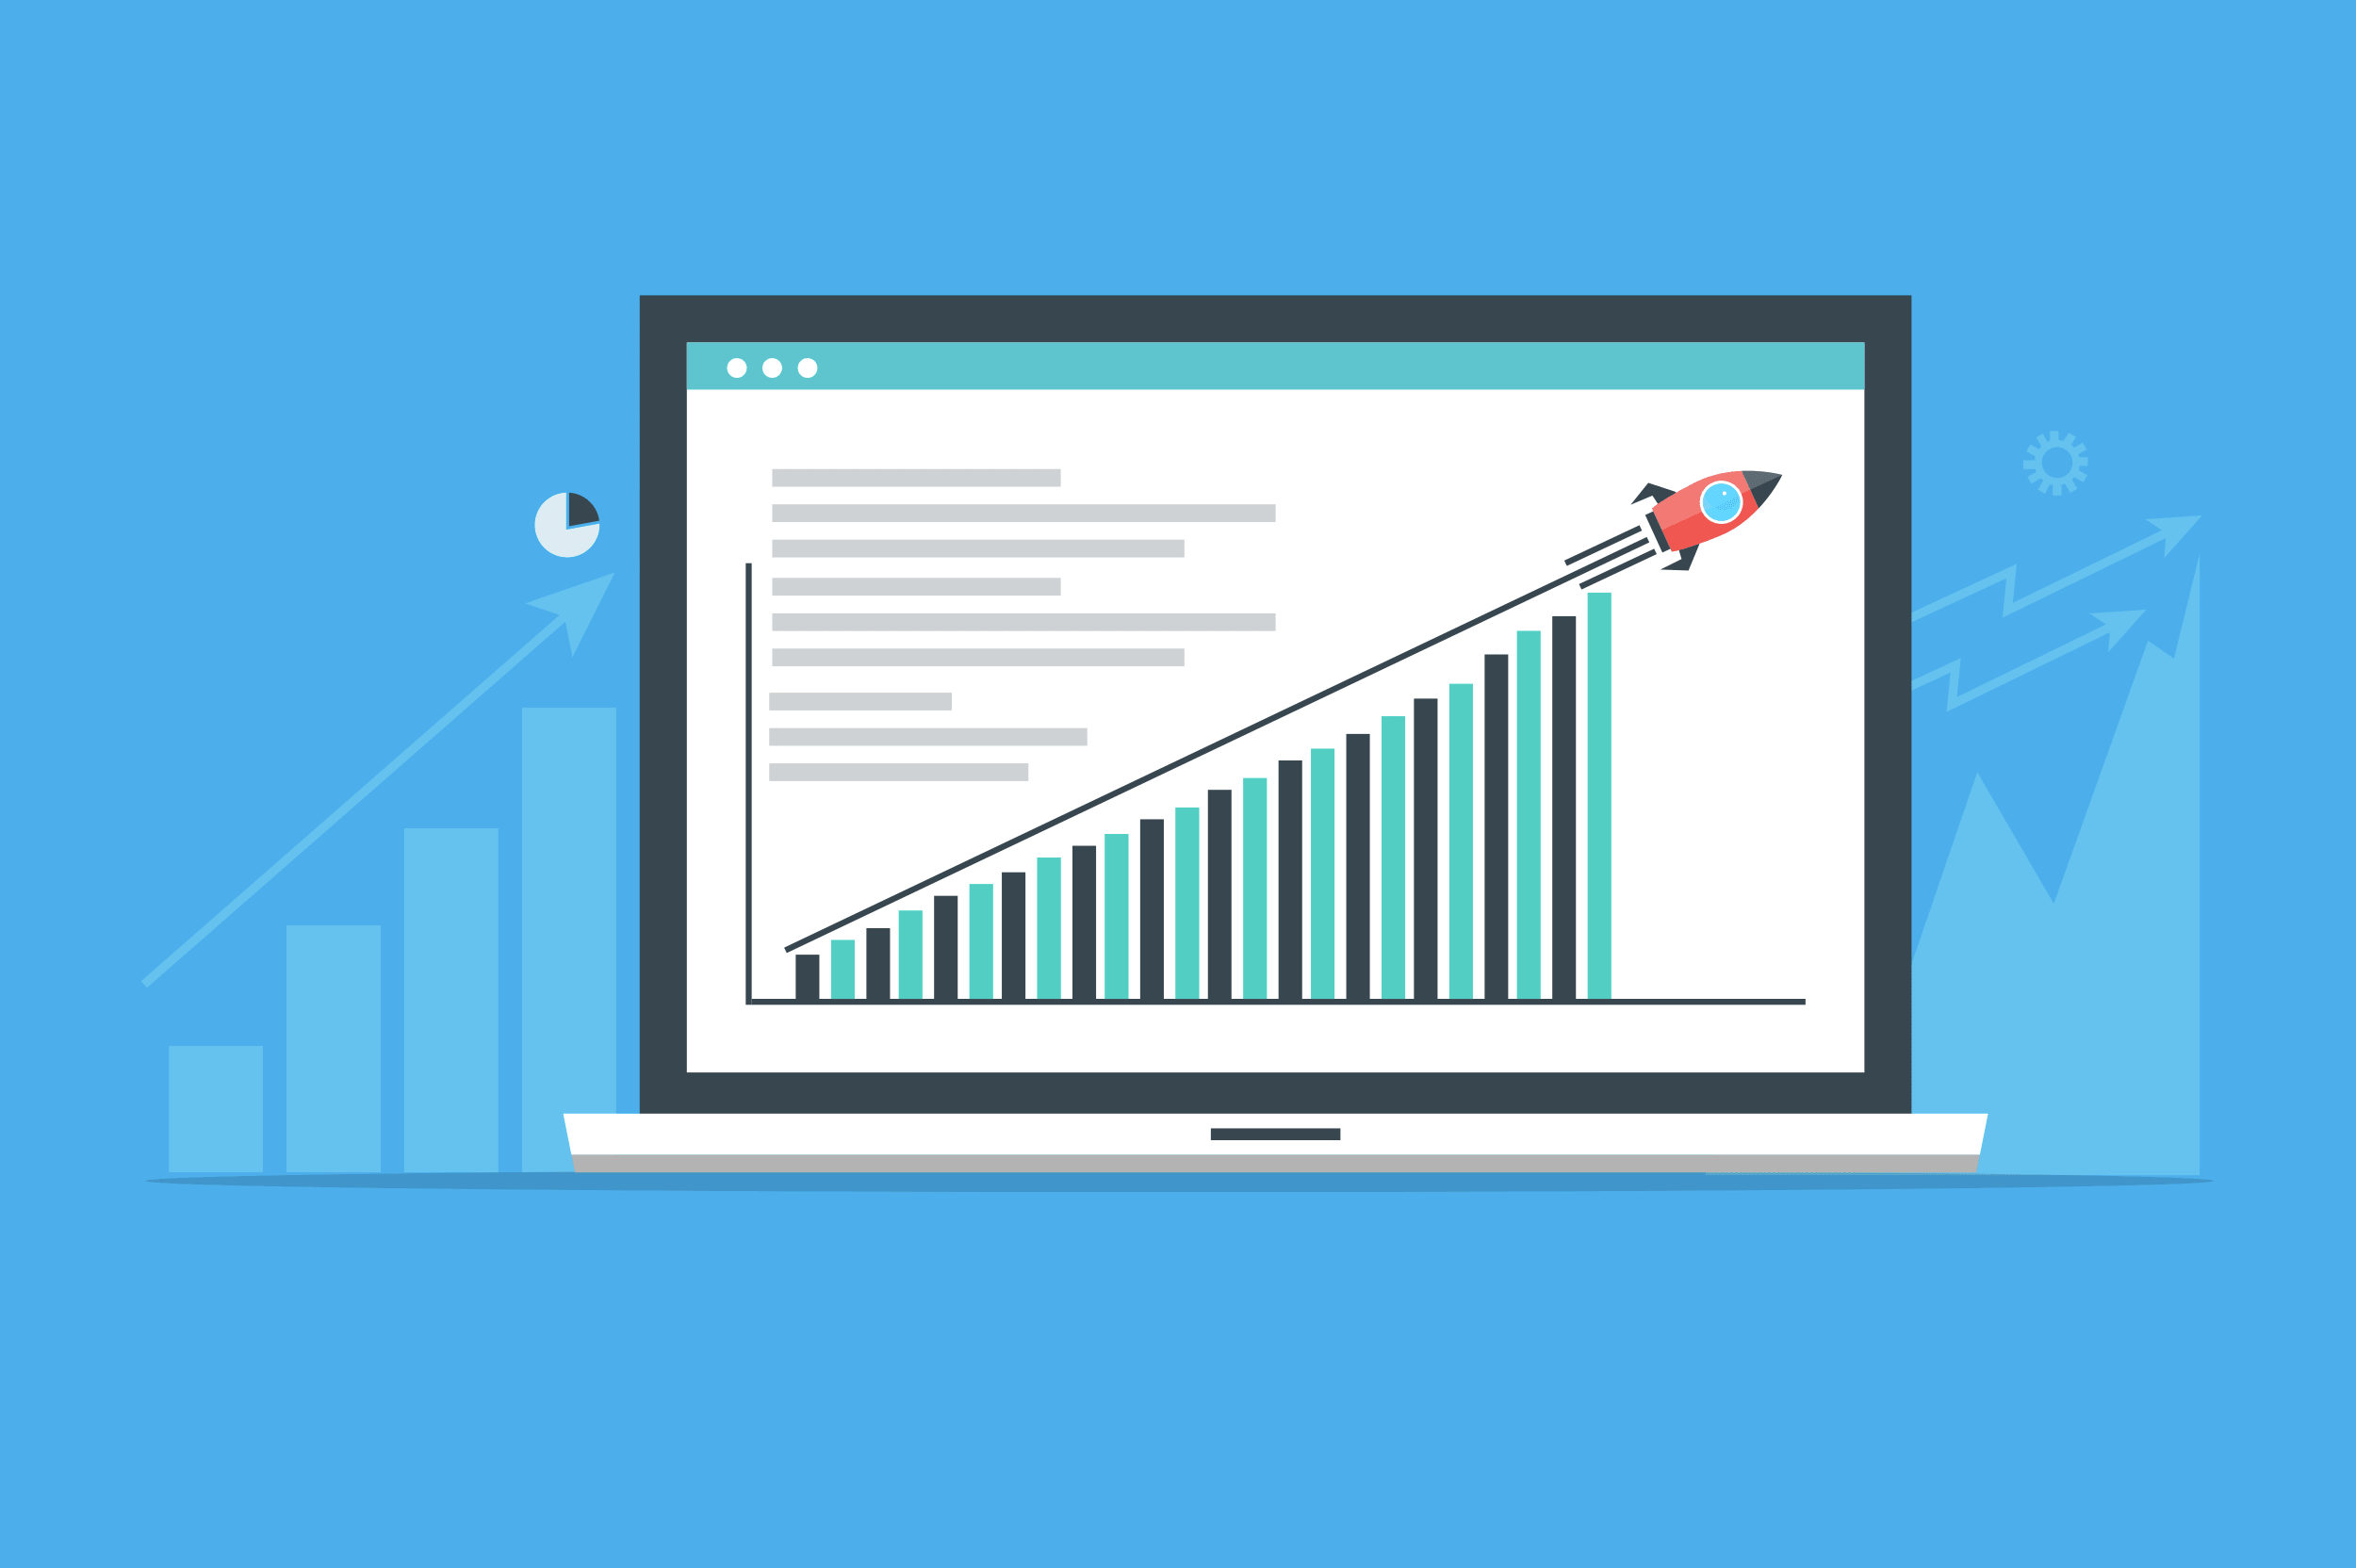 10 ways to increase traffic to your website - ShareThis